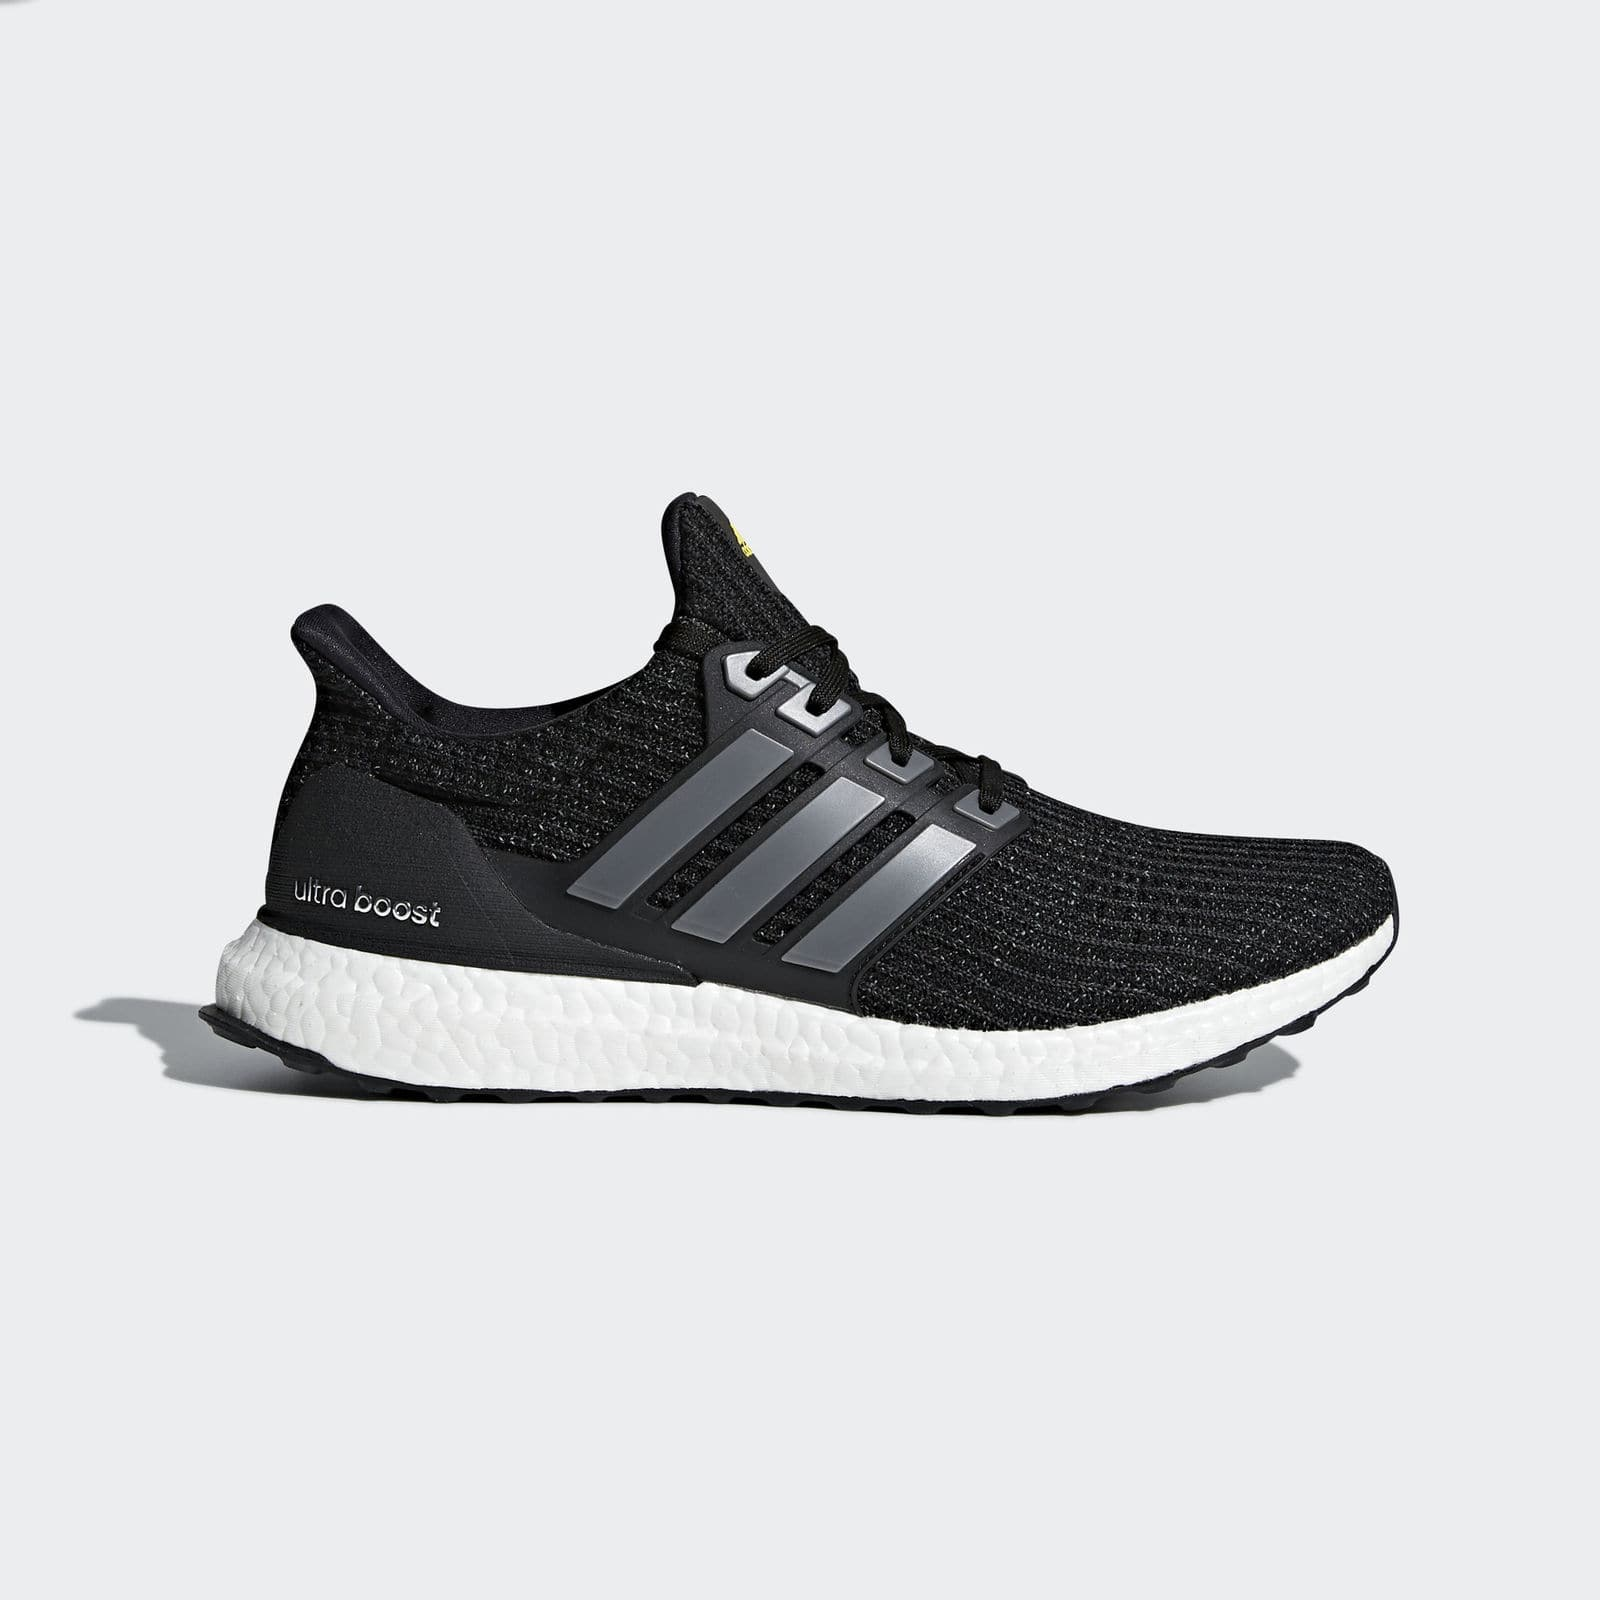 best service 88352 2387c adidas Ultraboost LTD Men s Running Shoes (Black Iron) EXPIRED